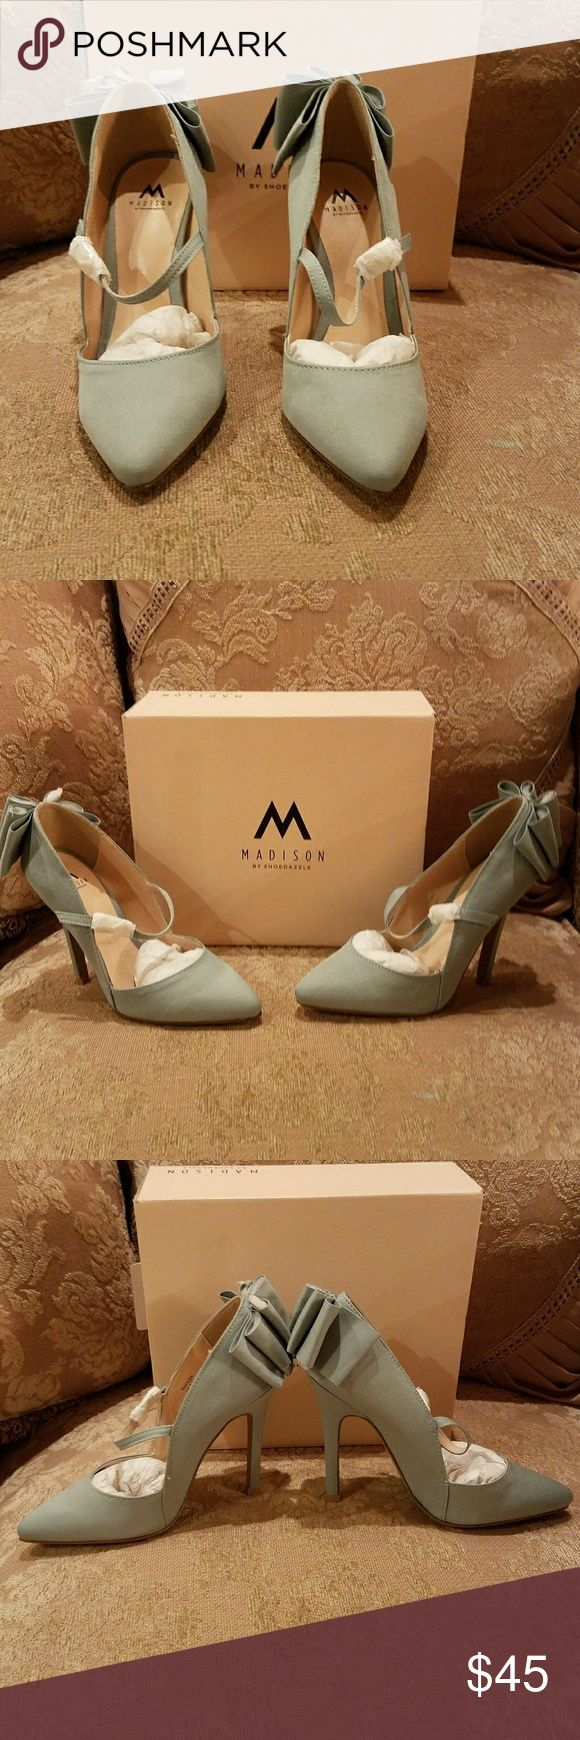 Madison by Shoe Dazzle high heels Woman's high heels brand new Madison by shoe Dazzle Shoes Heels